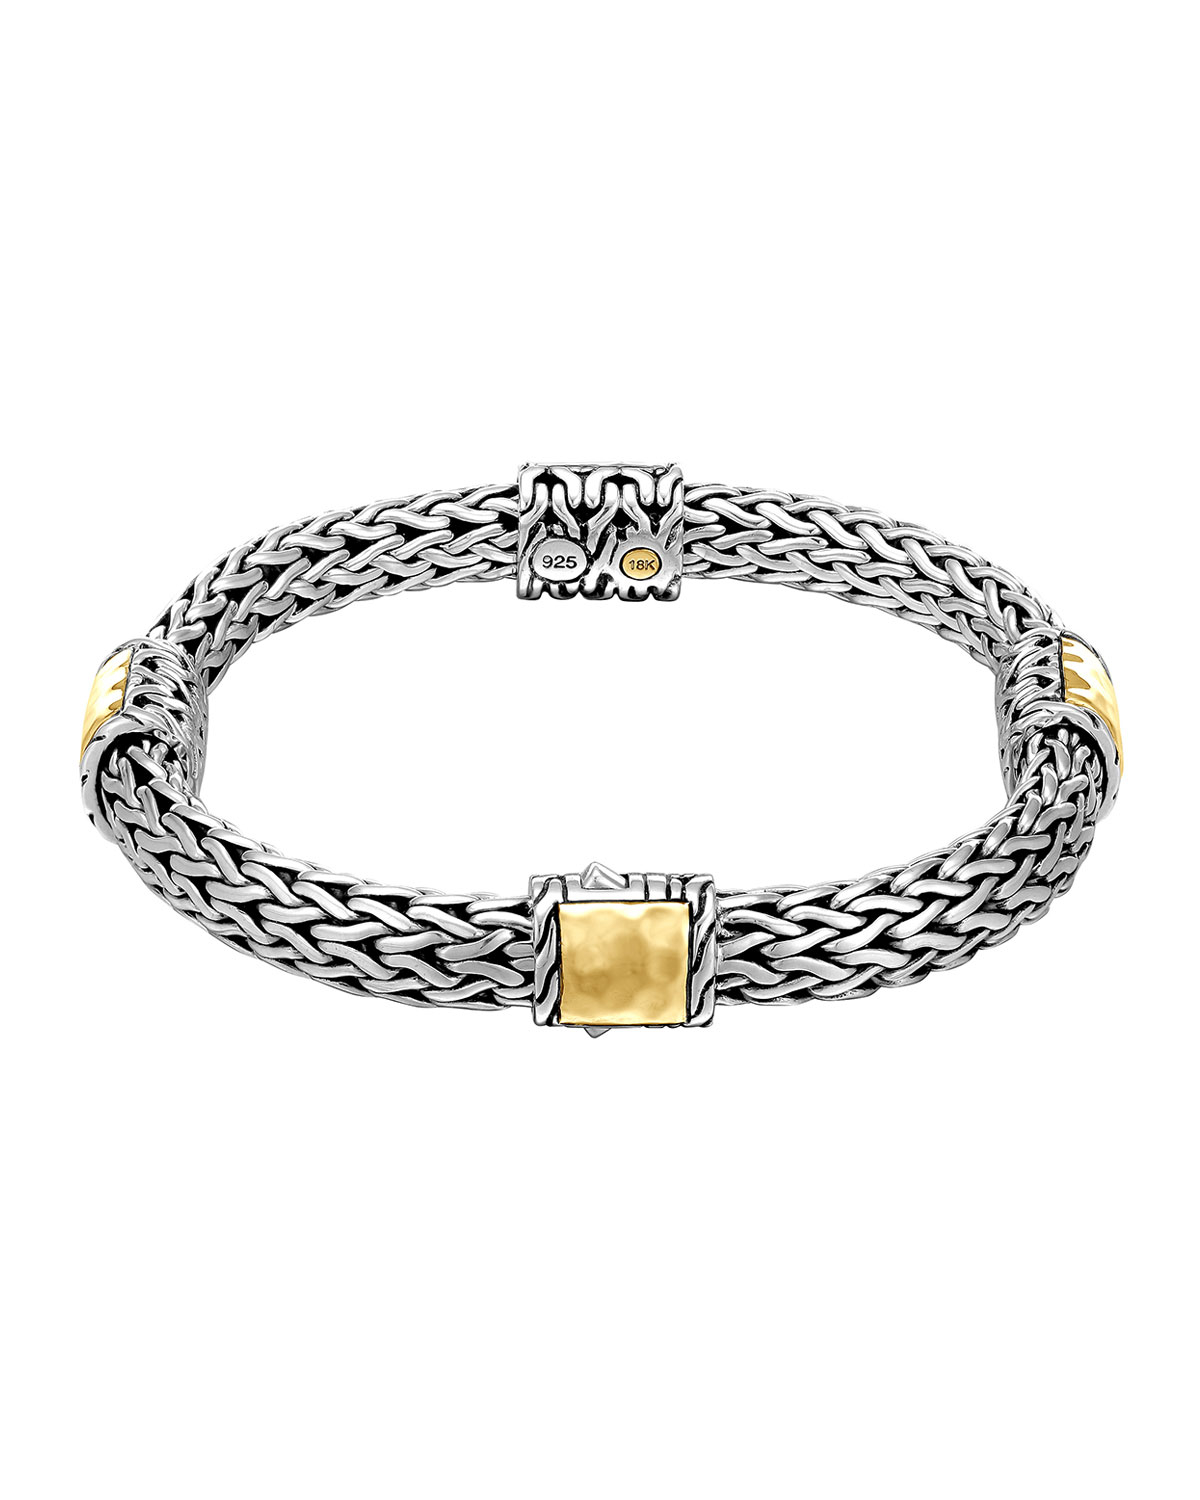 John hardy classic chain palu silver bracelet with gold for John hardy jewelry factory bali